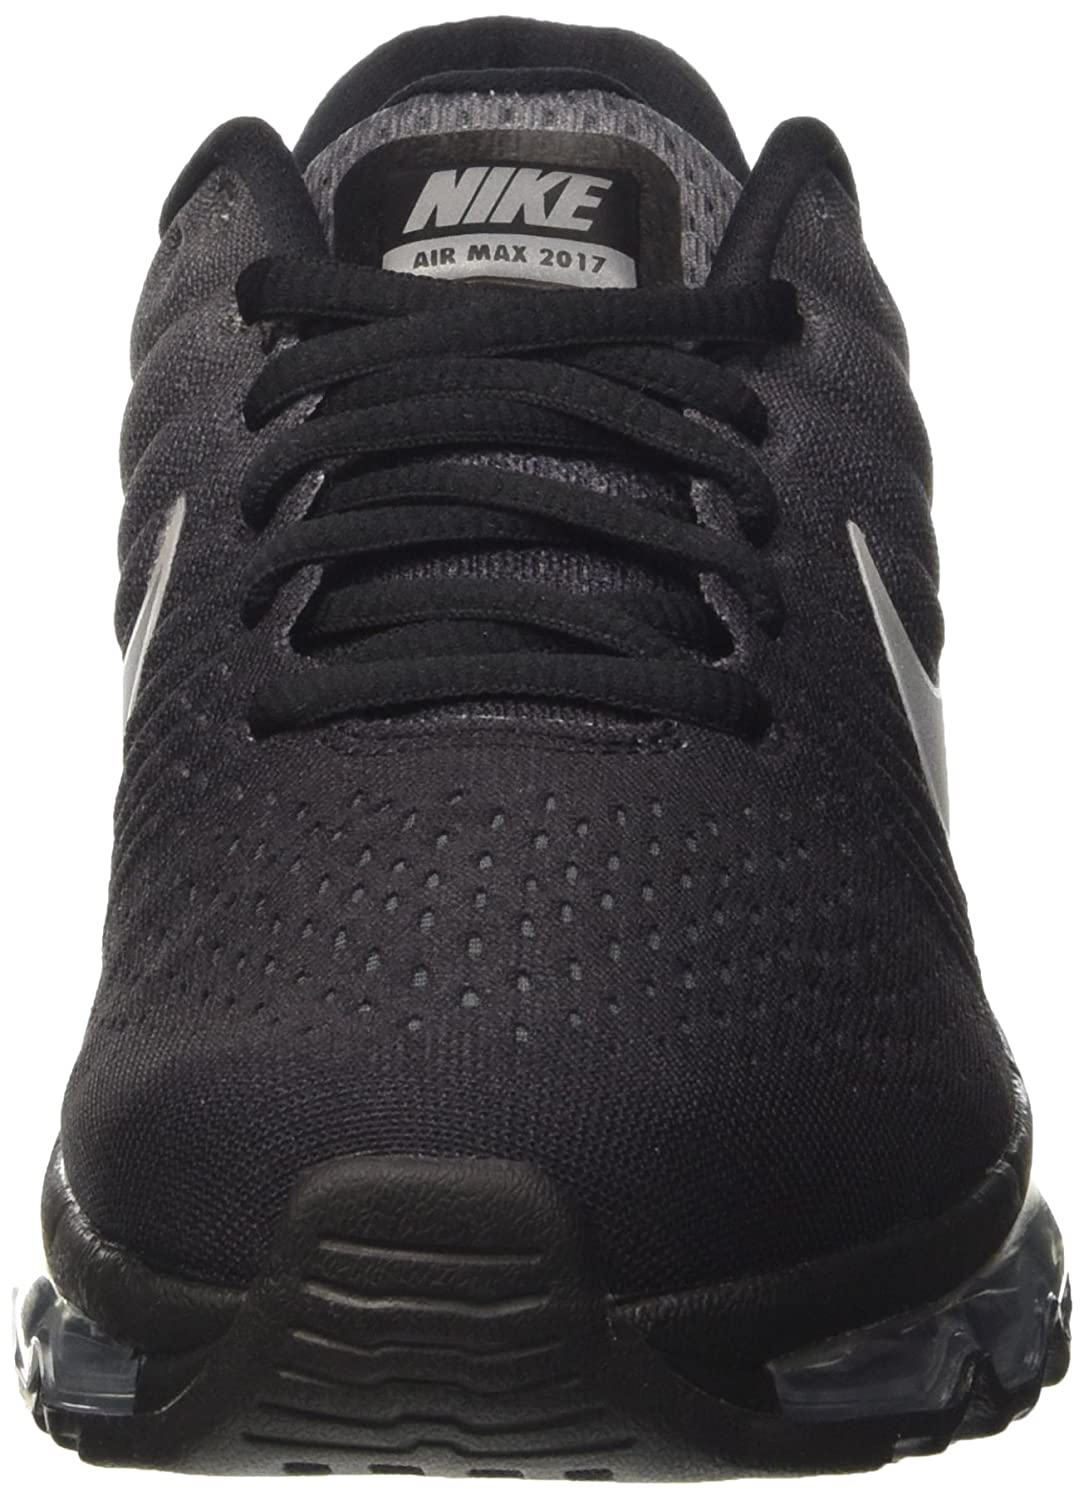 sale retailer b769f c8336 Nike Men s Black Mesh Air Max Shoes - 37.5 EU  Buy Online at Low Prices in  India - Amazon.in